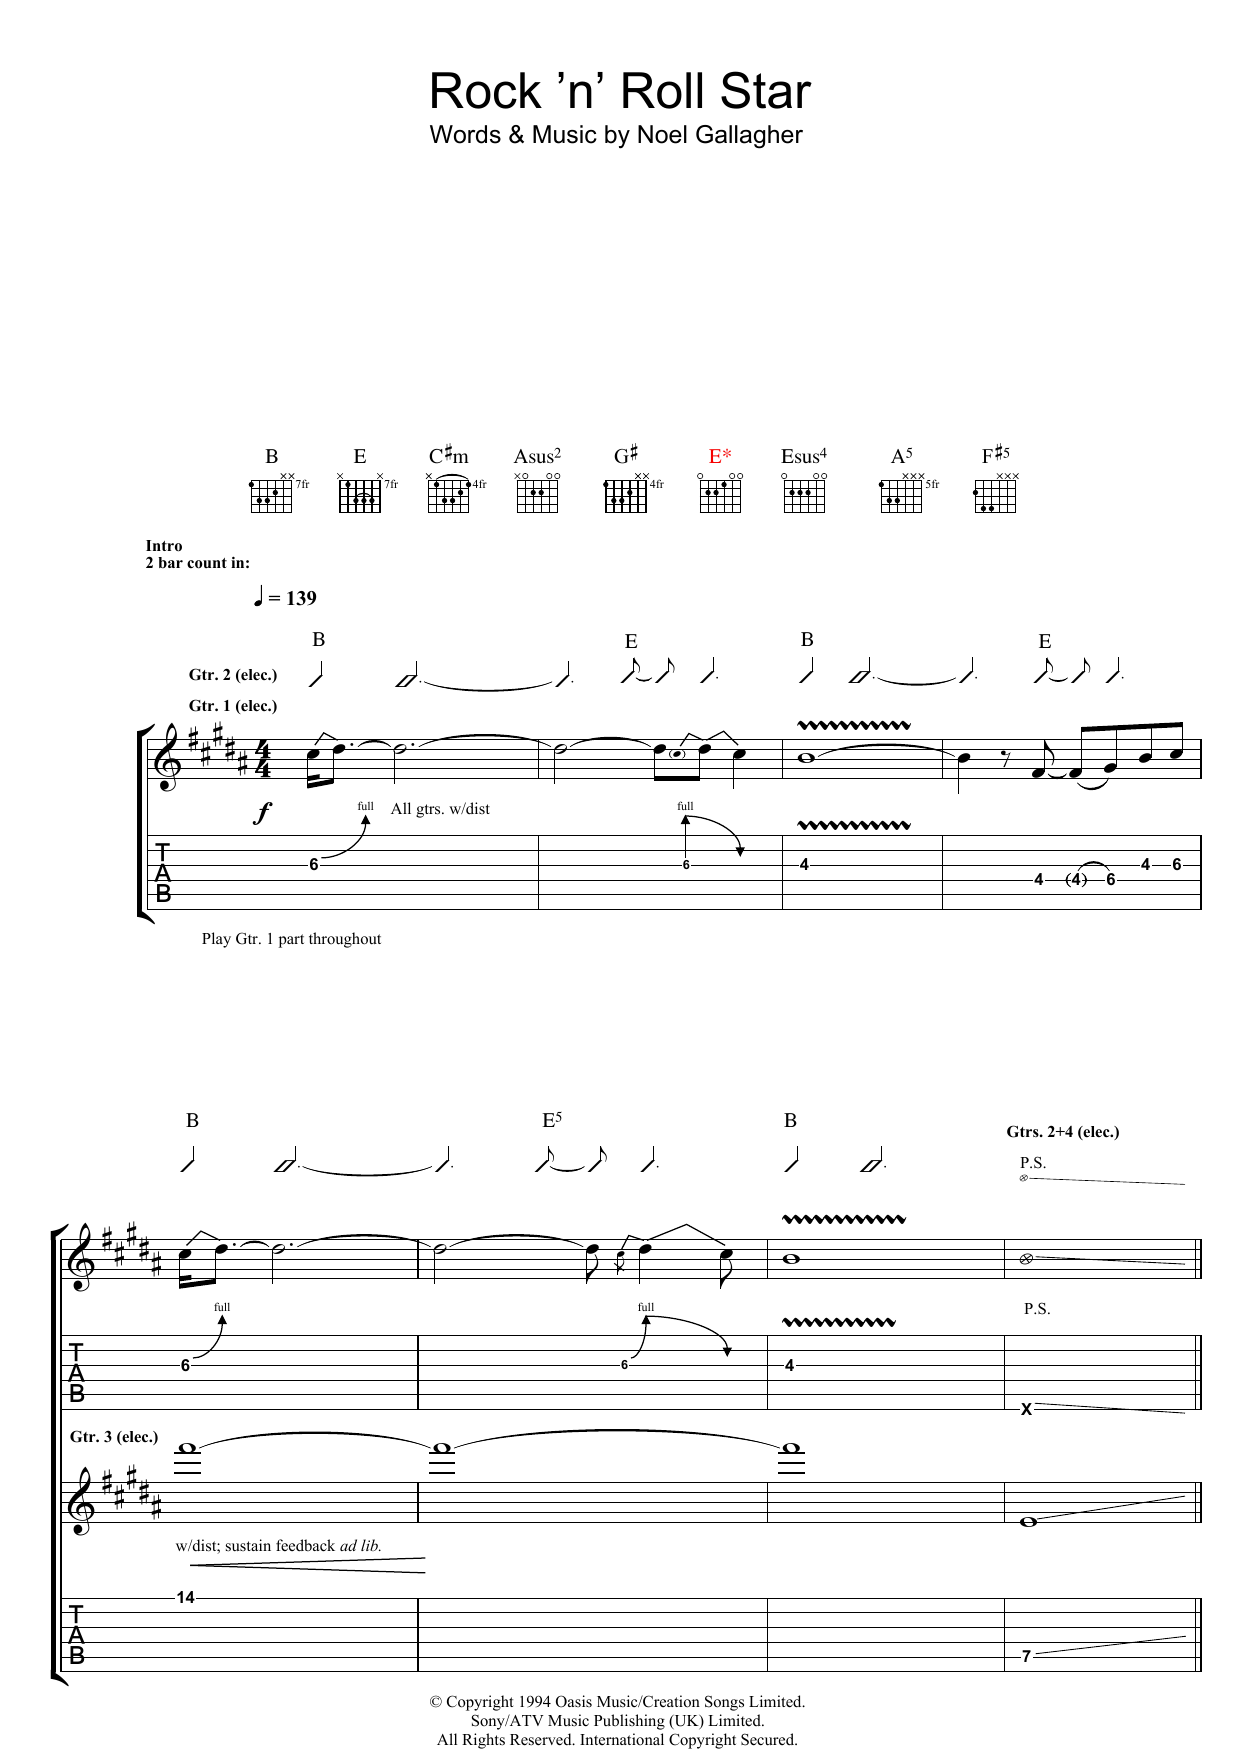 Sheet Music Digital Files To Print Licensed Noel Gallagher Digital Sheet Music